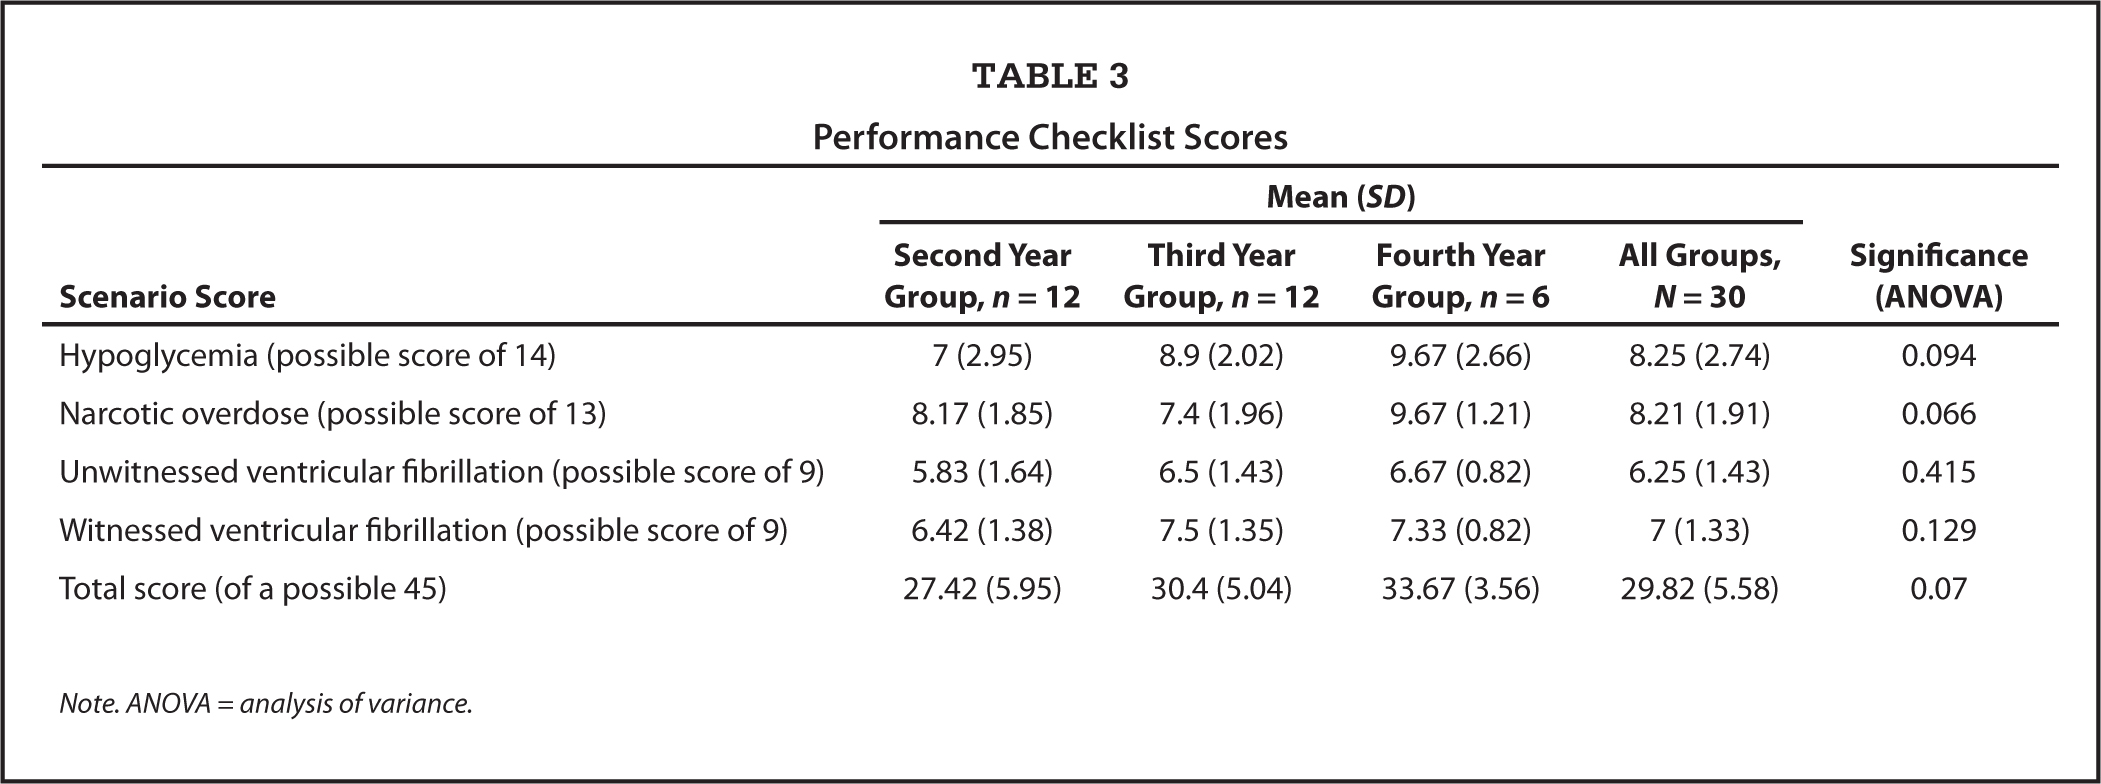 Performance Checklist Scores